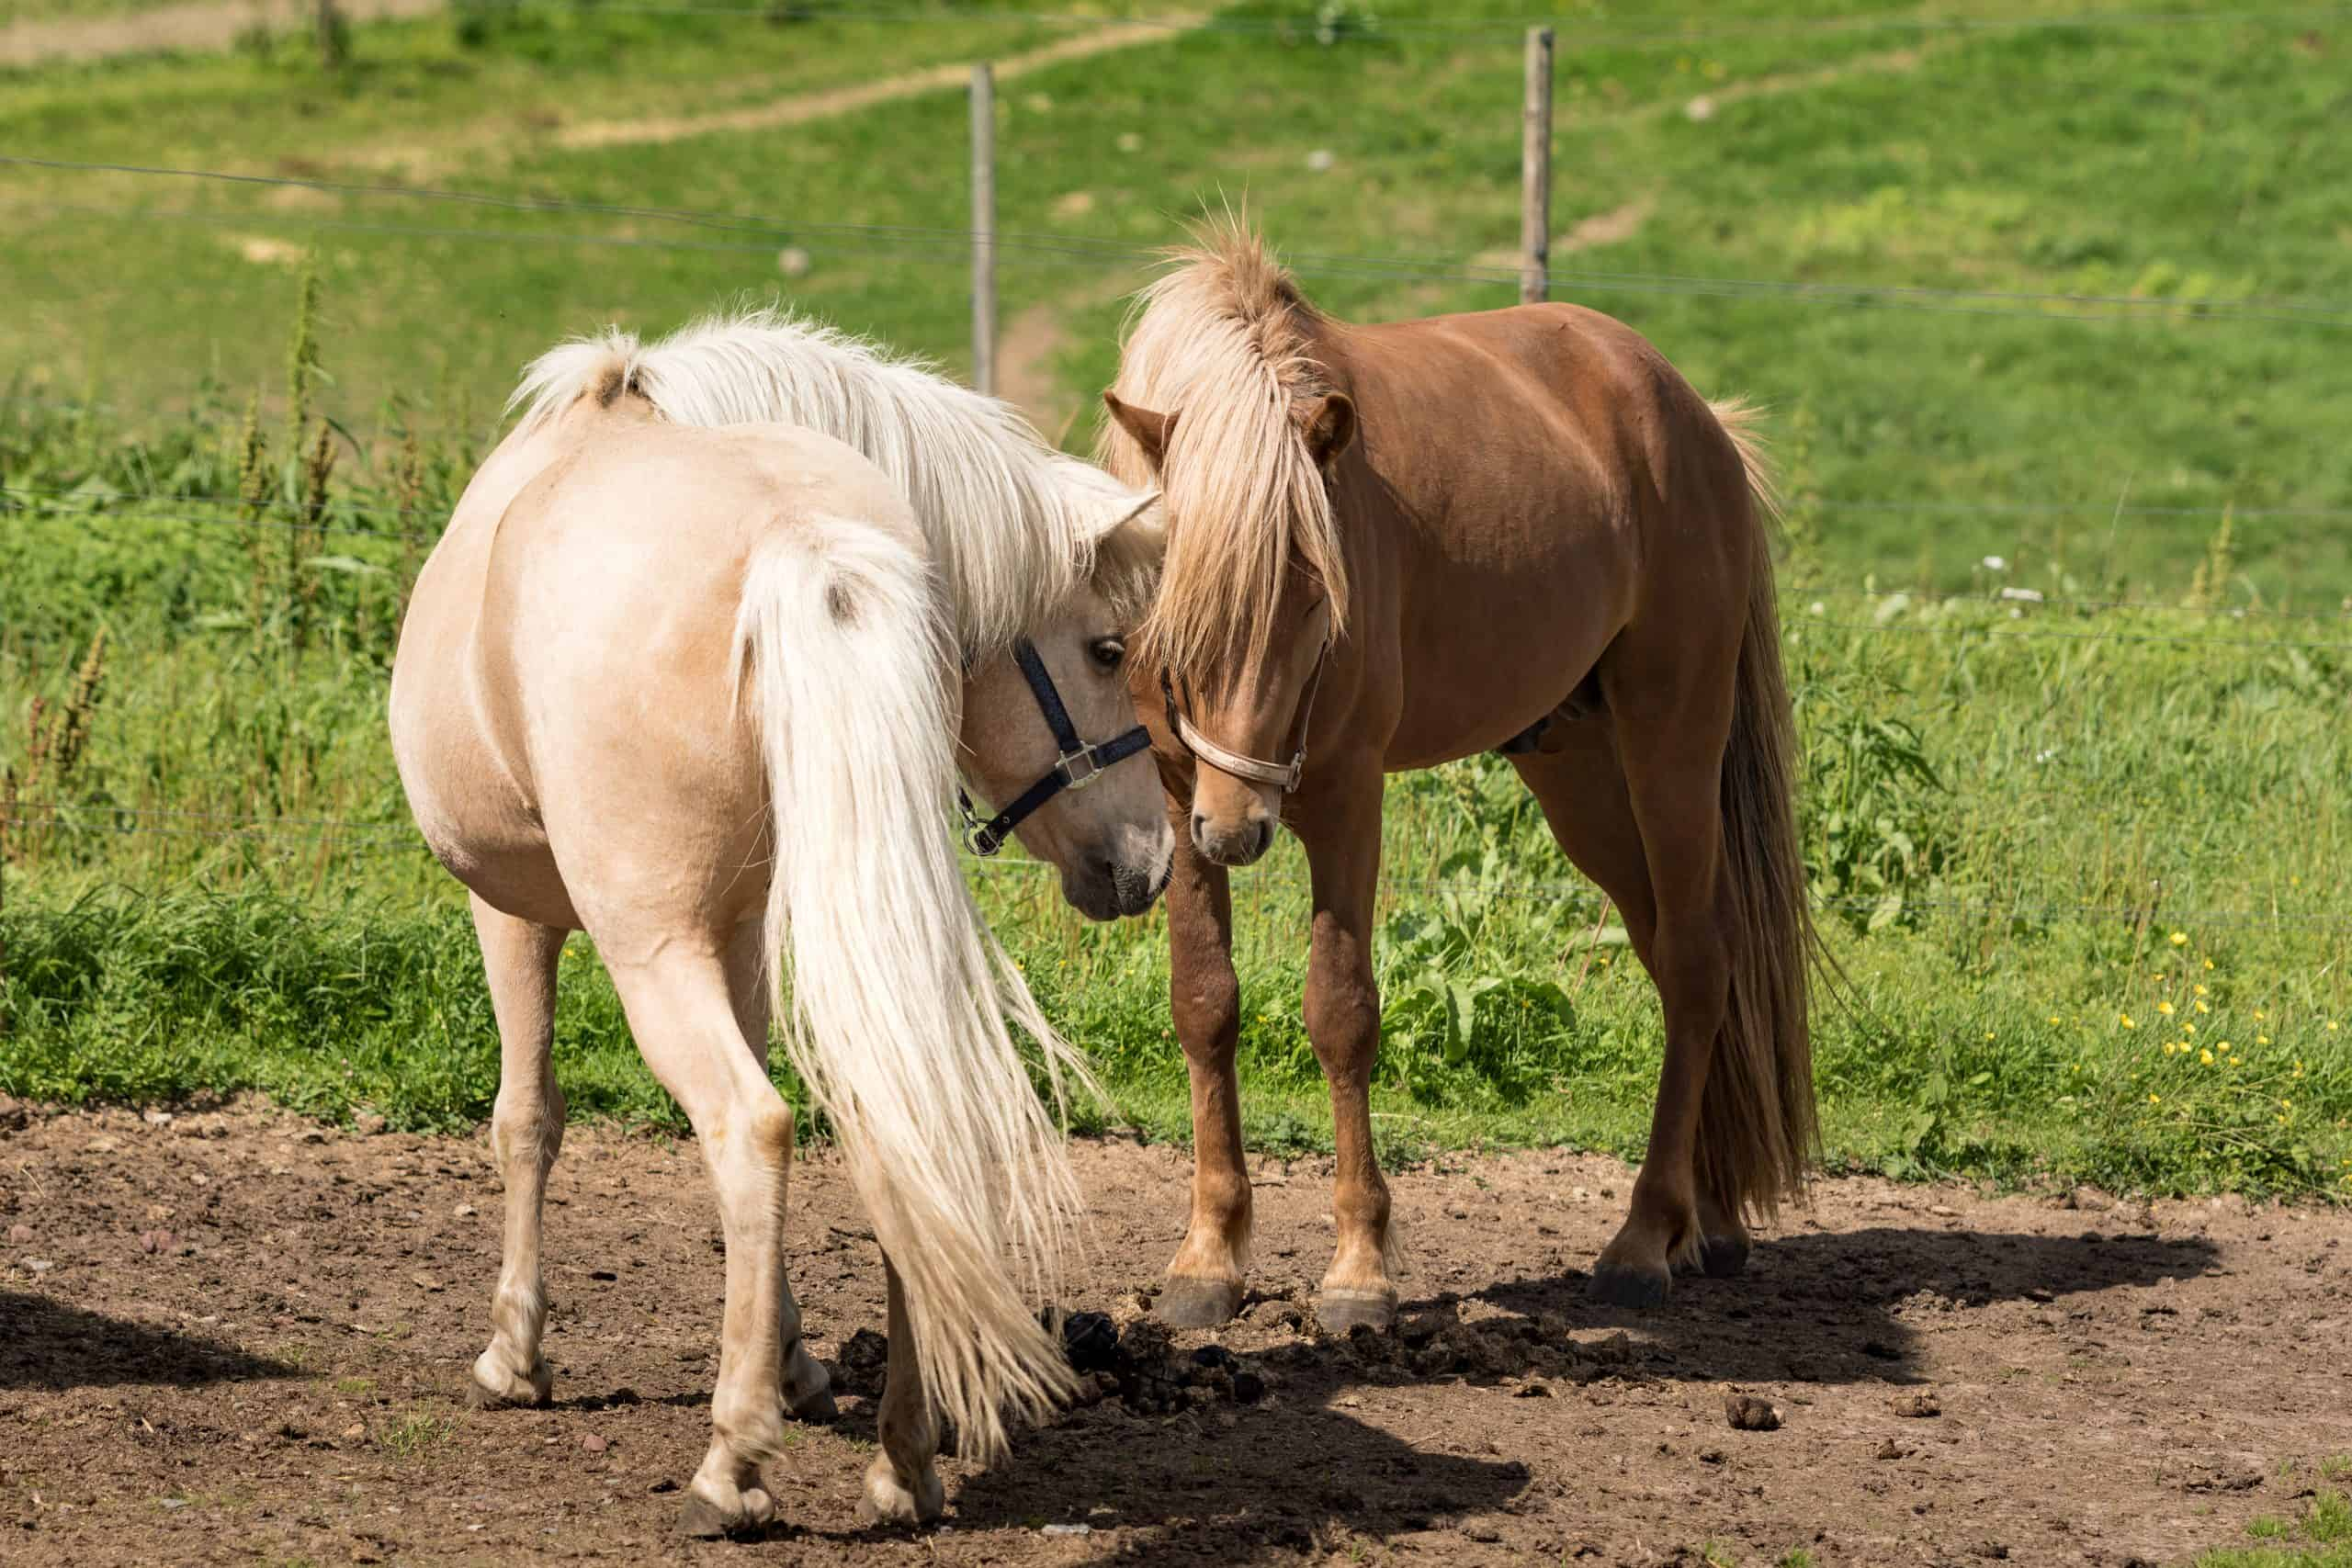 Icelandic horses getting to know each other, making friends prior to mating.